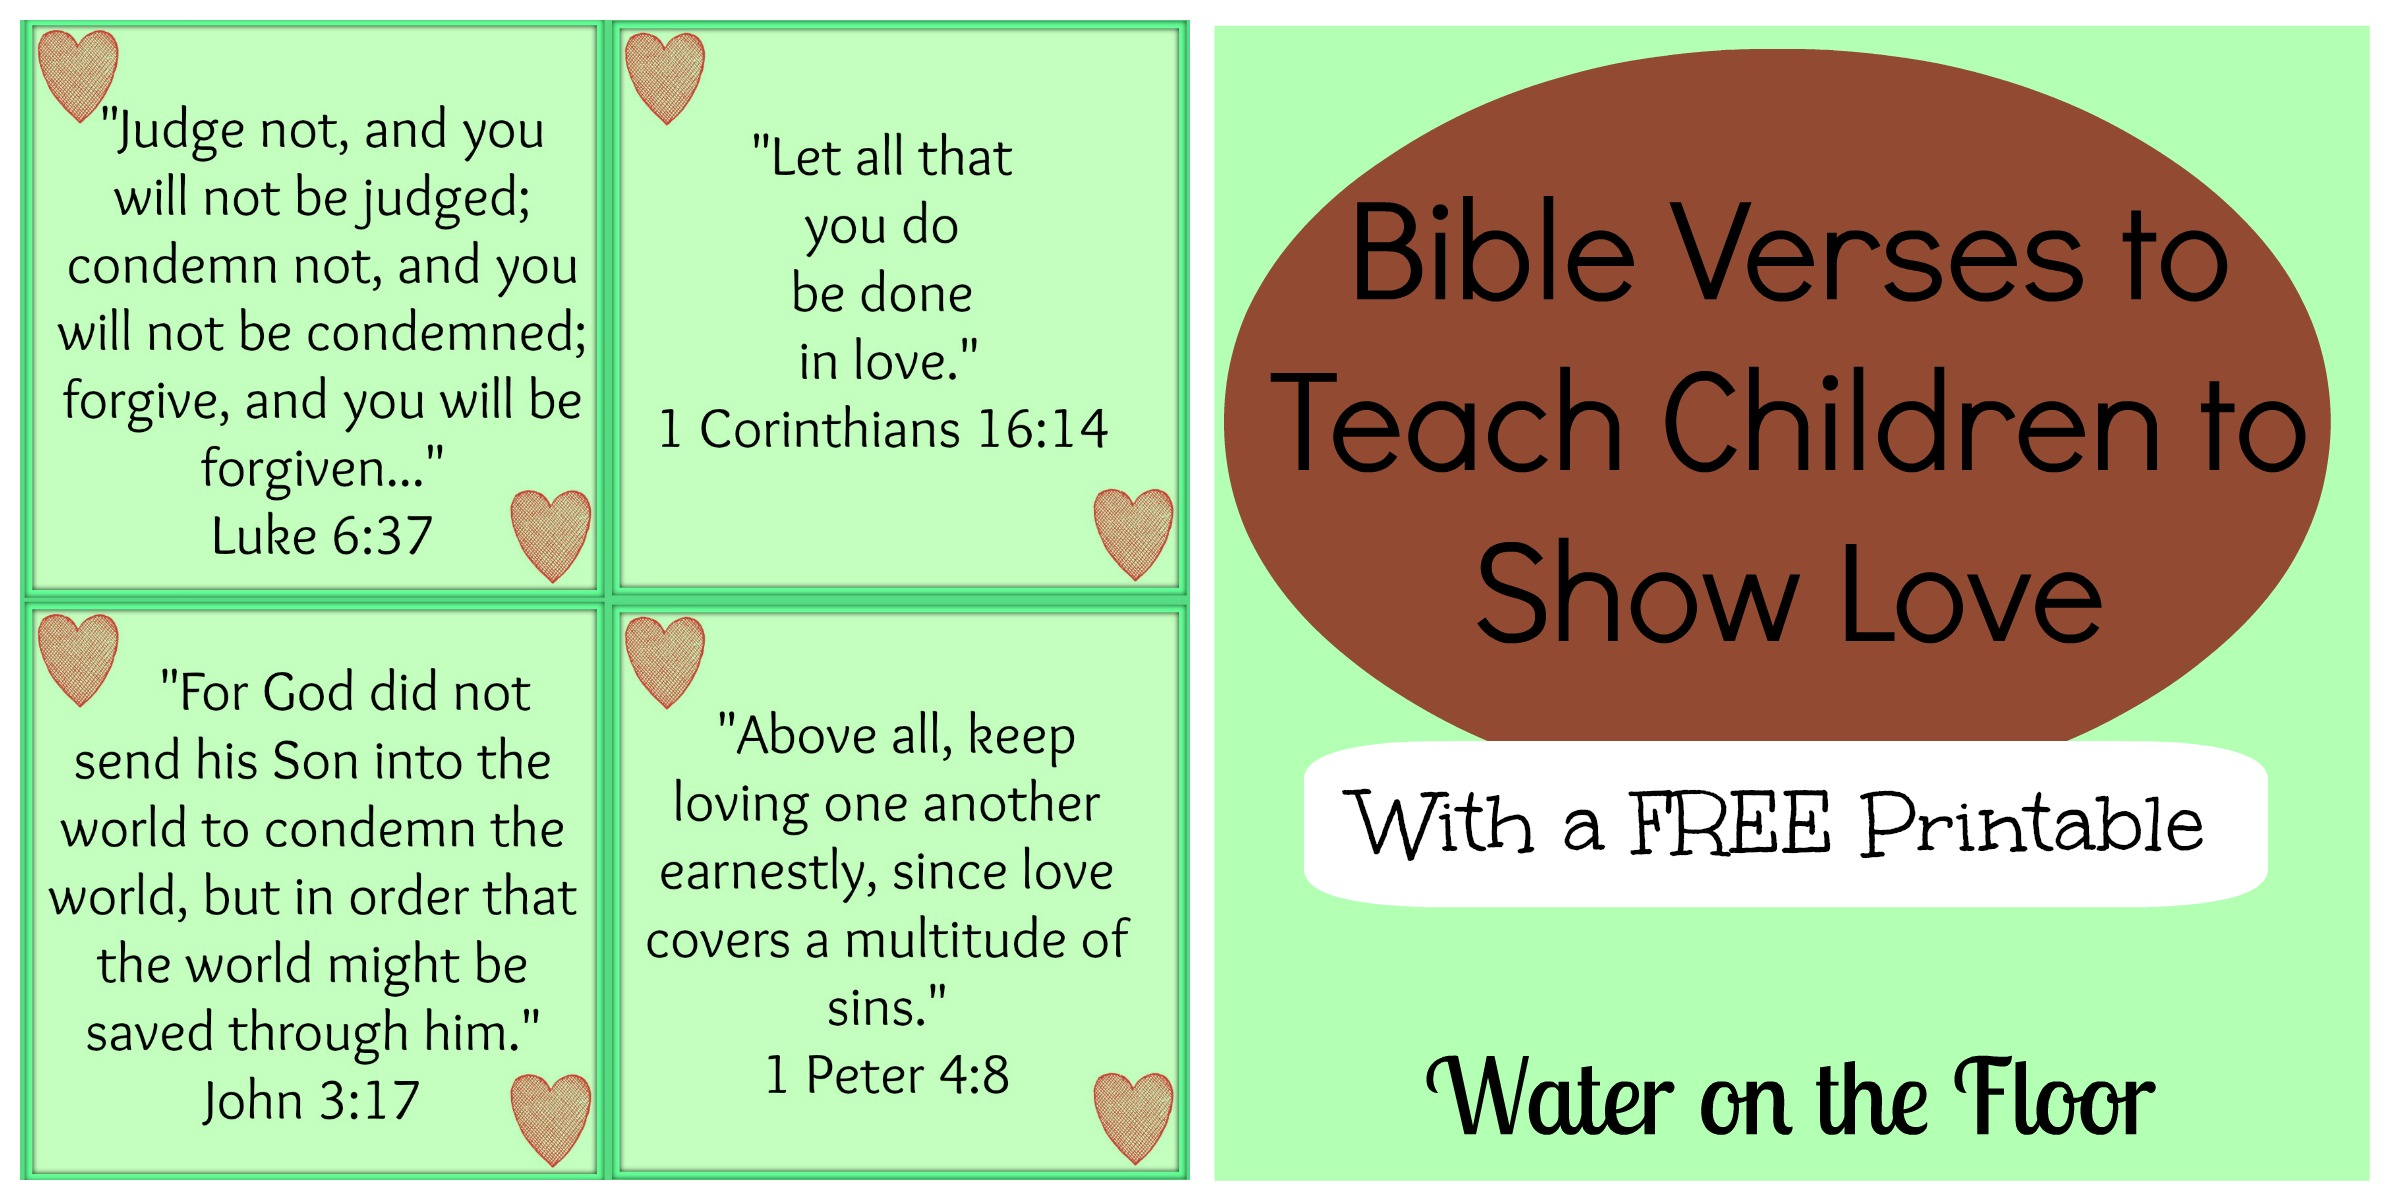 Bible Quotes On Love And Marriage Bible Verses To Teach Children To Show Love With A Free Printable